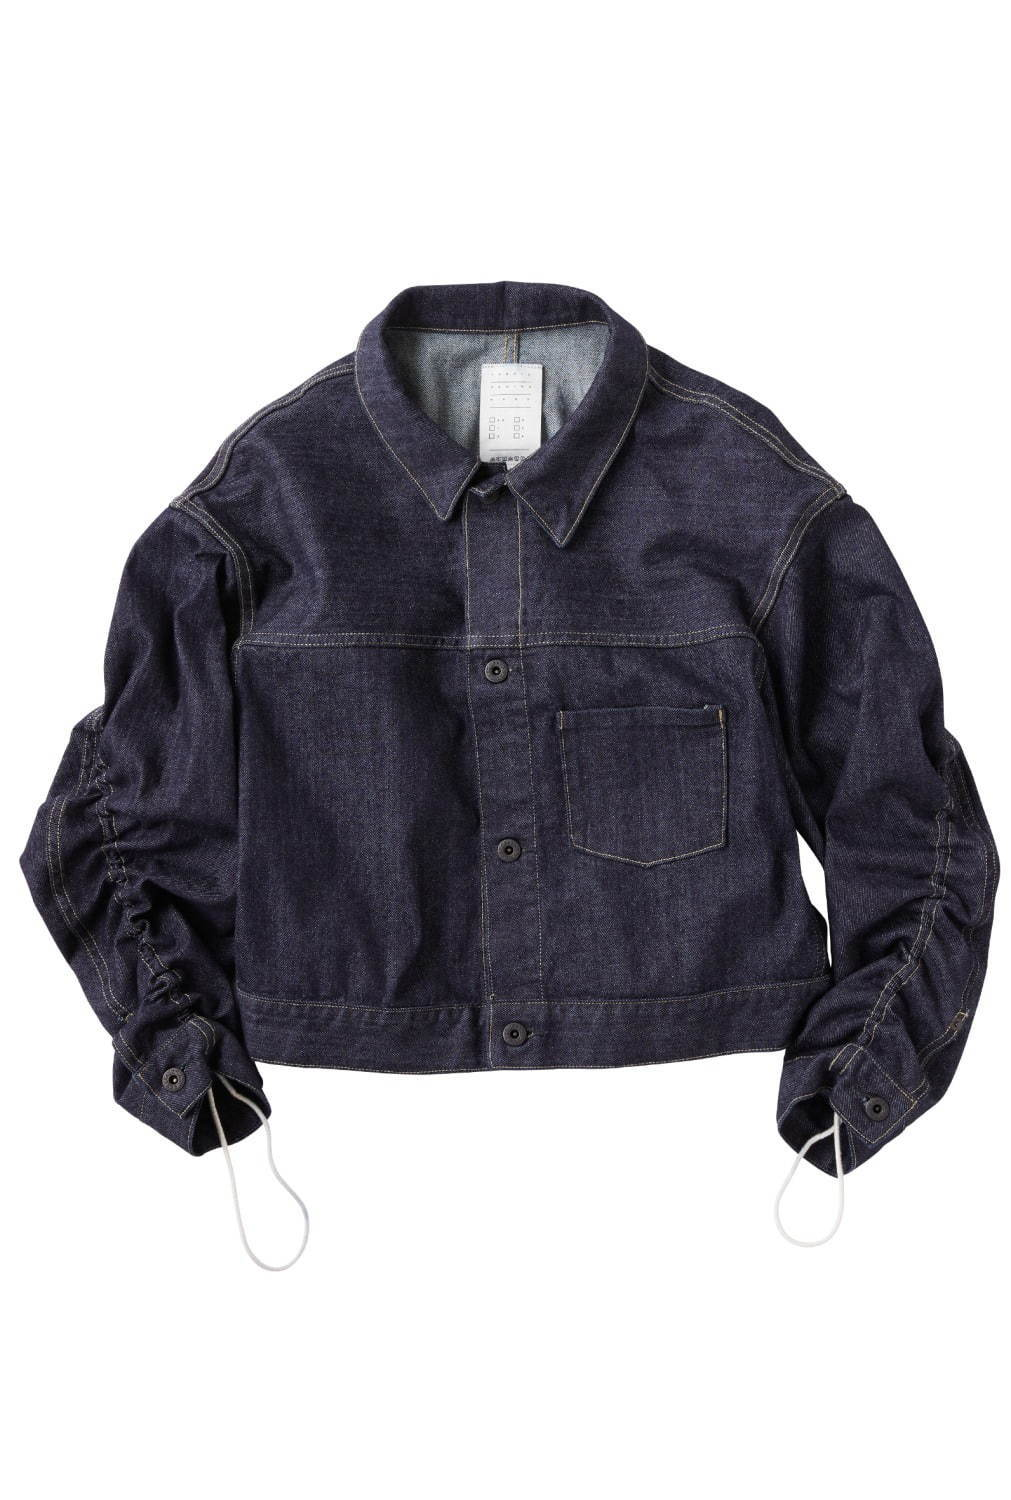 ADJUSTABLE DENIM JACKET 32,000円+税